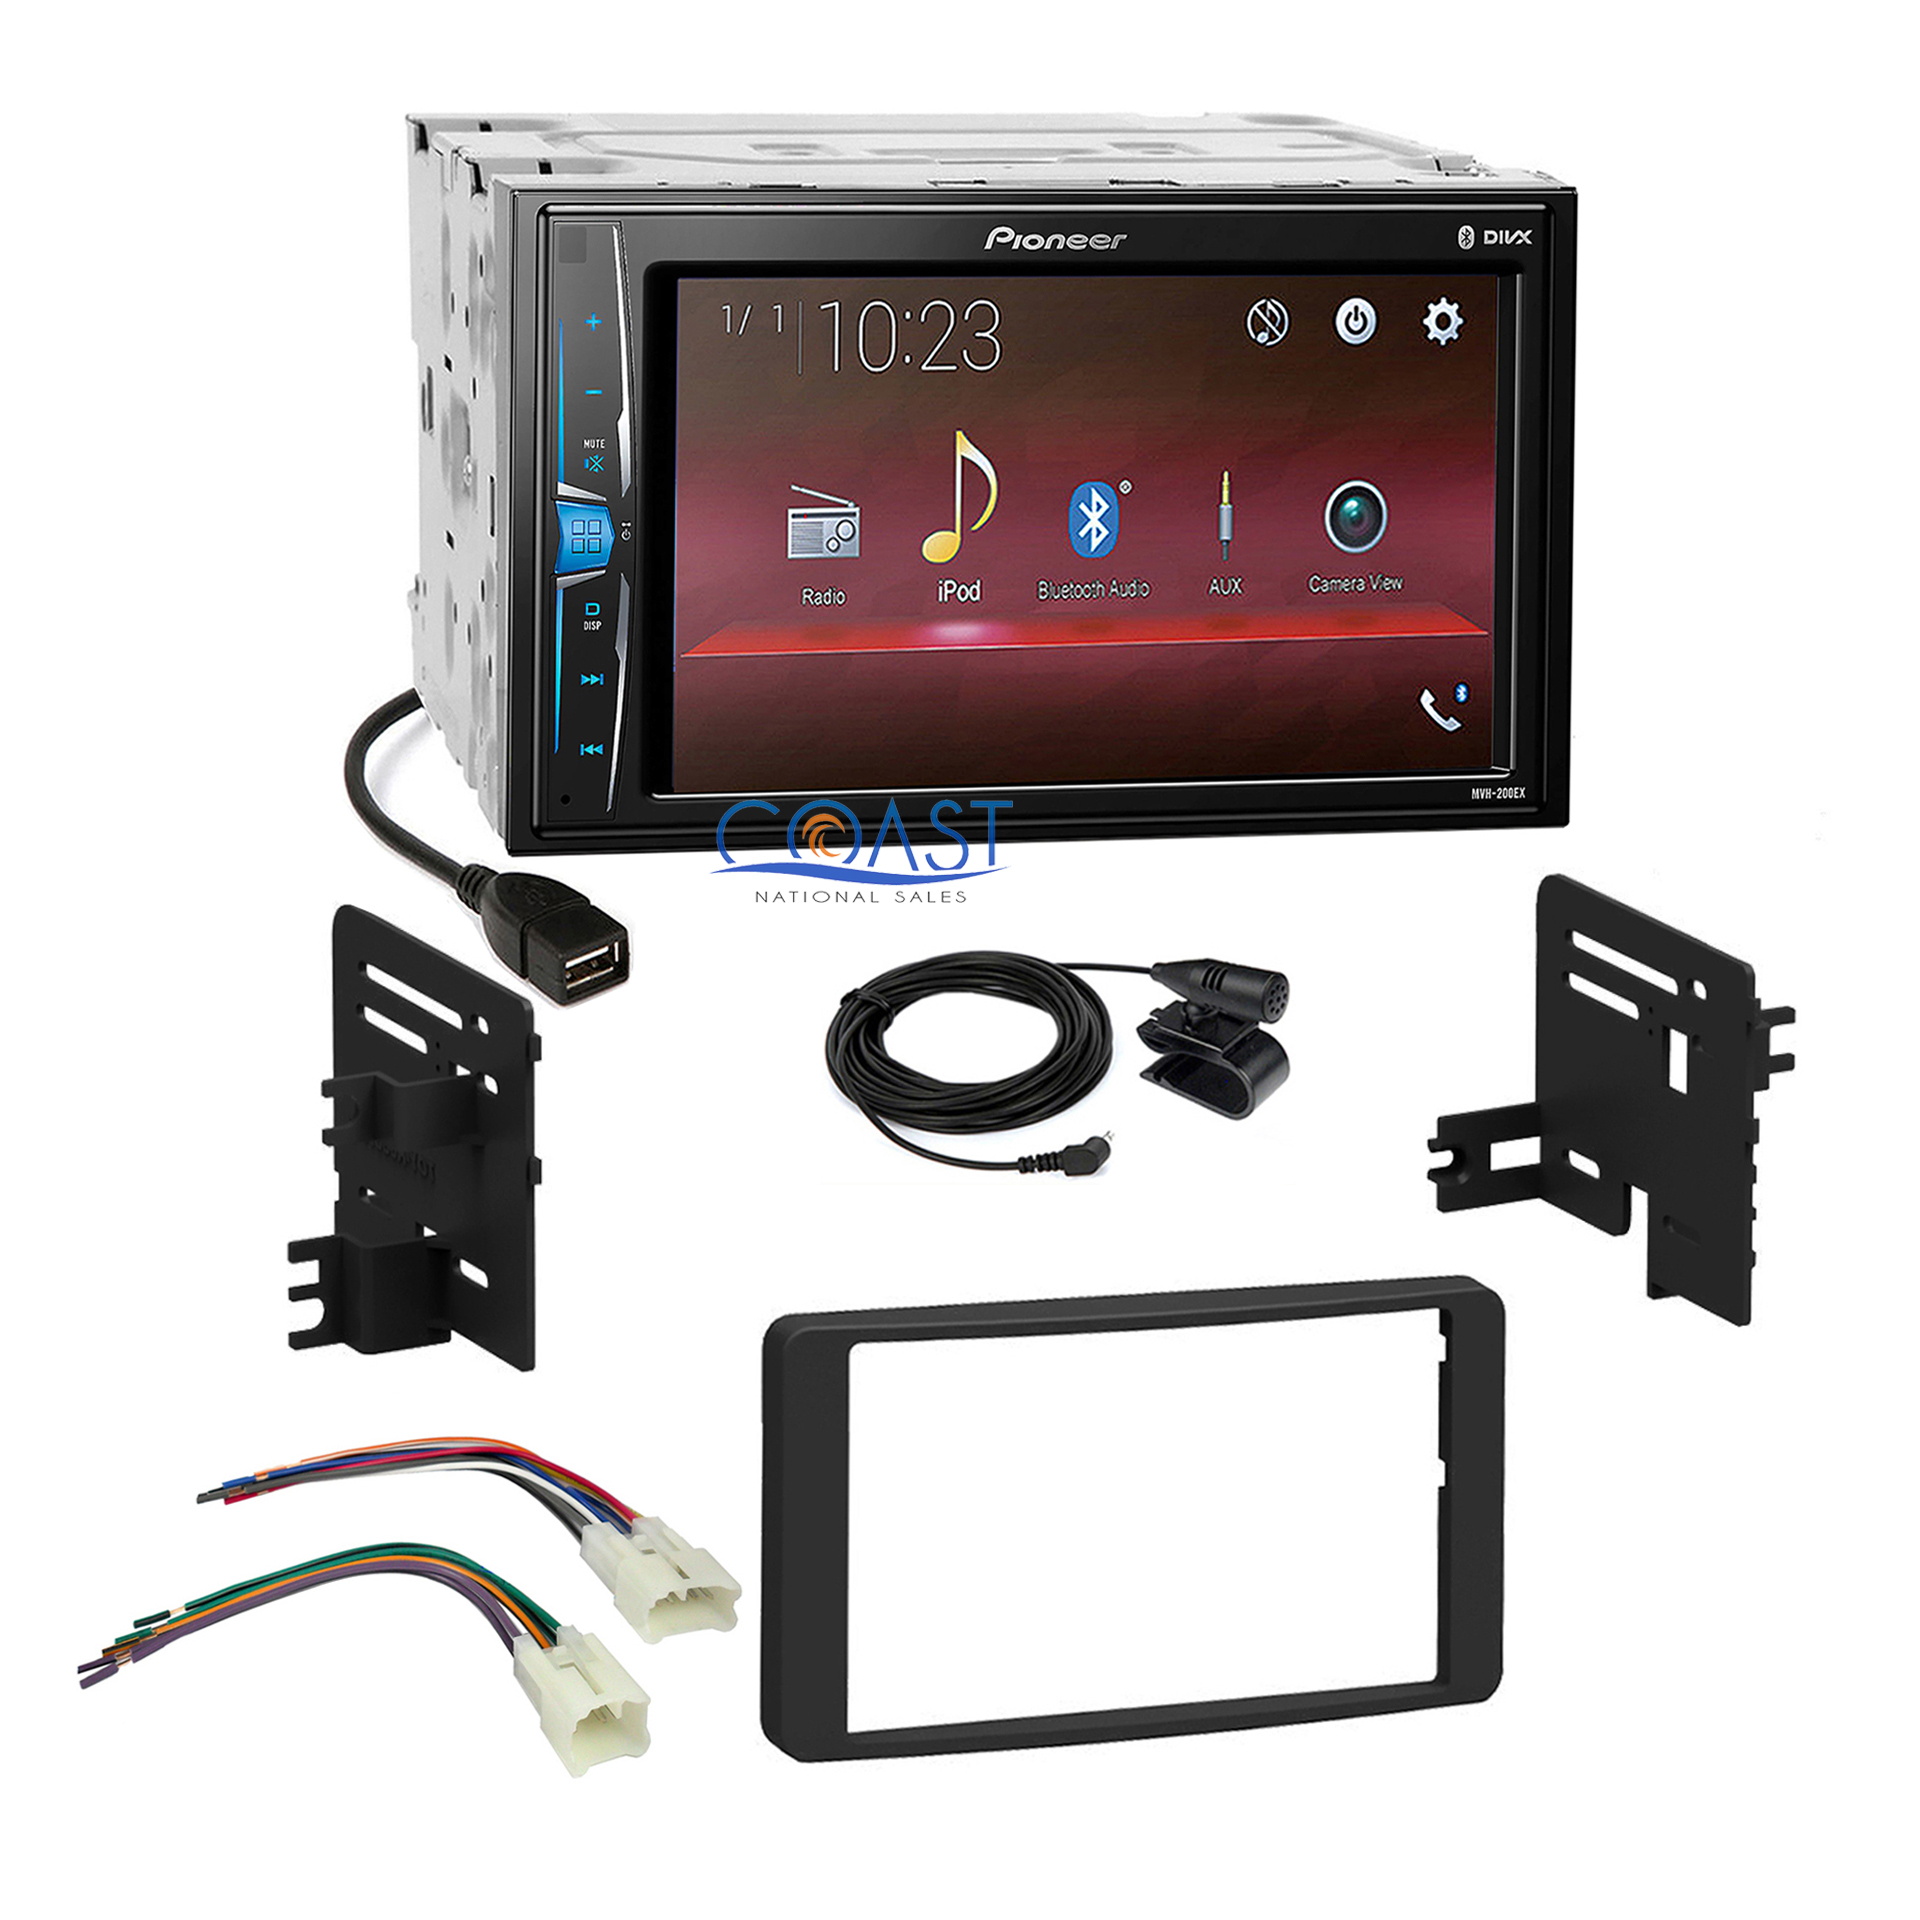 hight resolution of details about pioneer 2018 usb multimedia stereo dash kit harness 03 07 toyota tundra sequoia